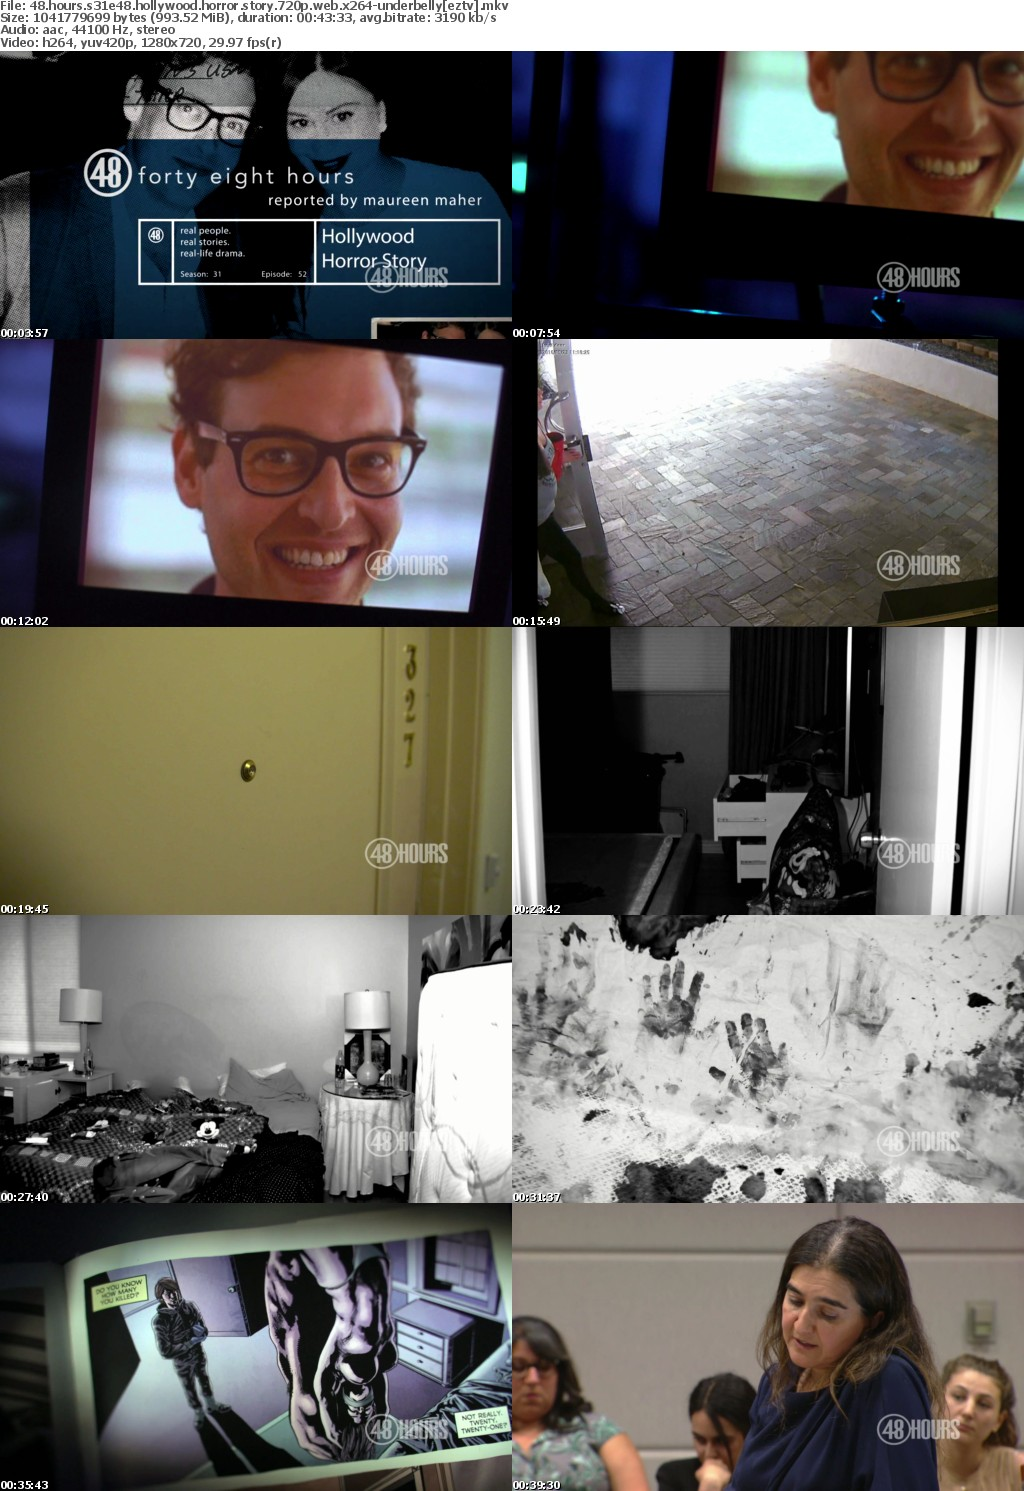 48 Hours S31E48 Hollywood Horror Story 720p WEB x264 UNDERBELLY